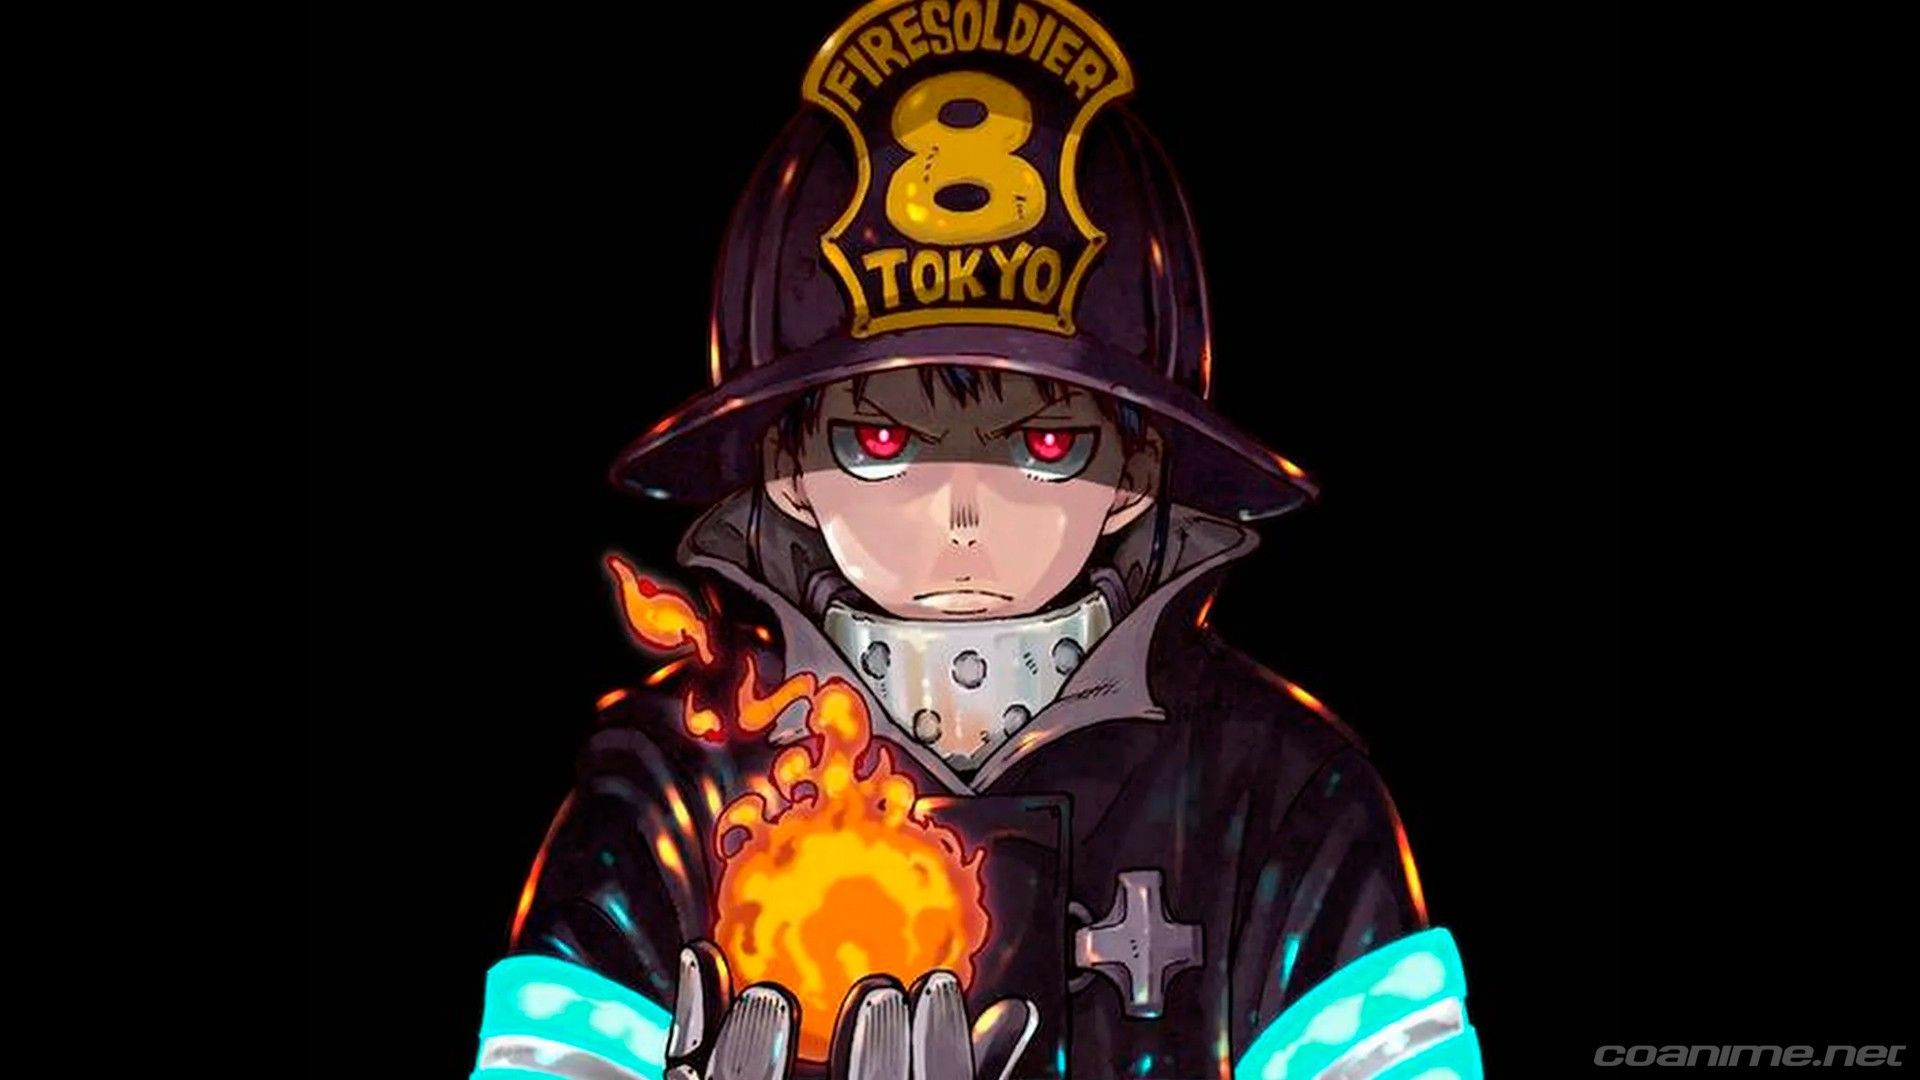 Fire Force Wallpapers Posted By John Anderson We have a lot of different topics like nature, abstract and a lot more. fire force wallpapers posted by john